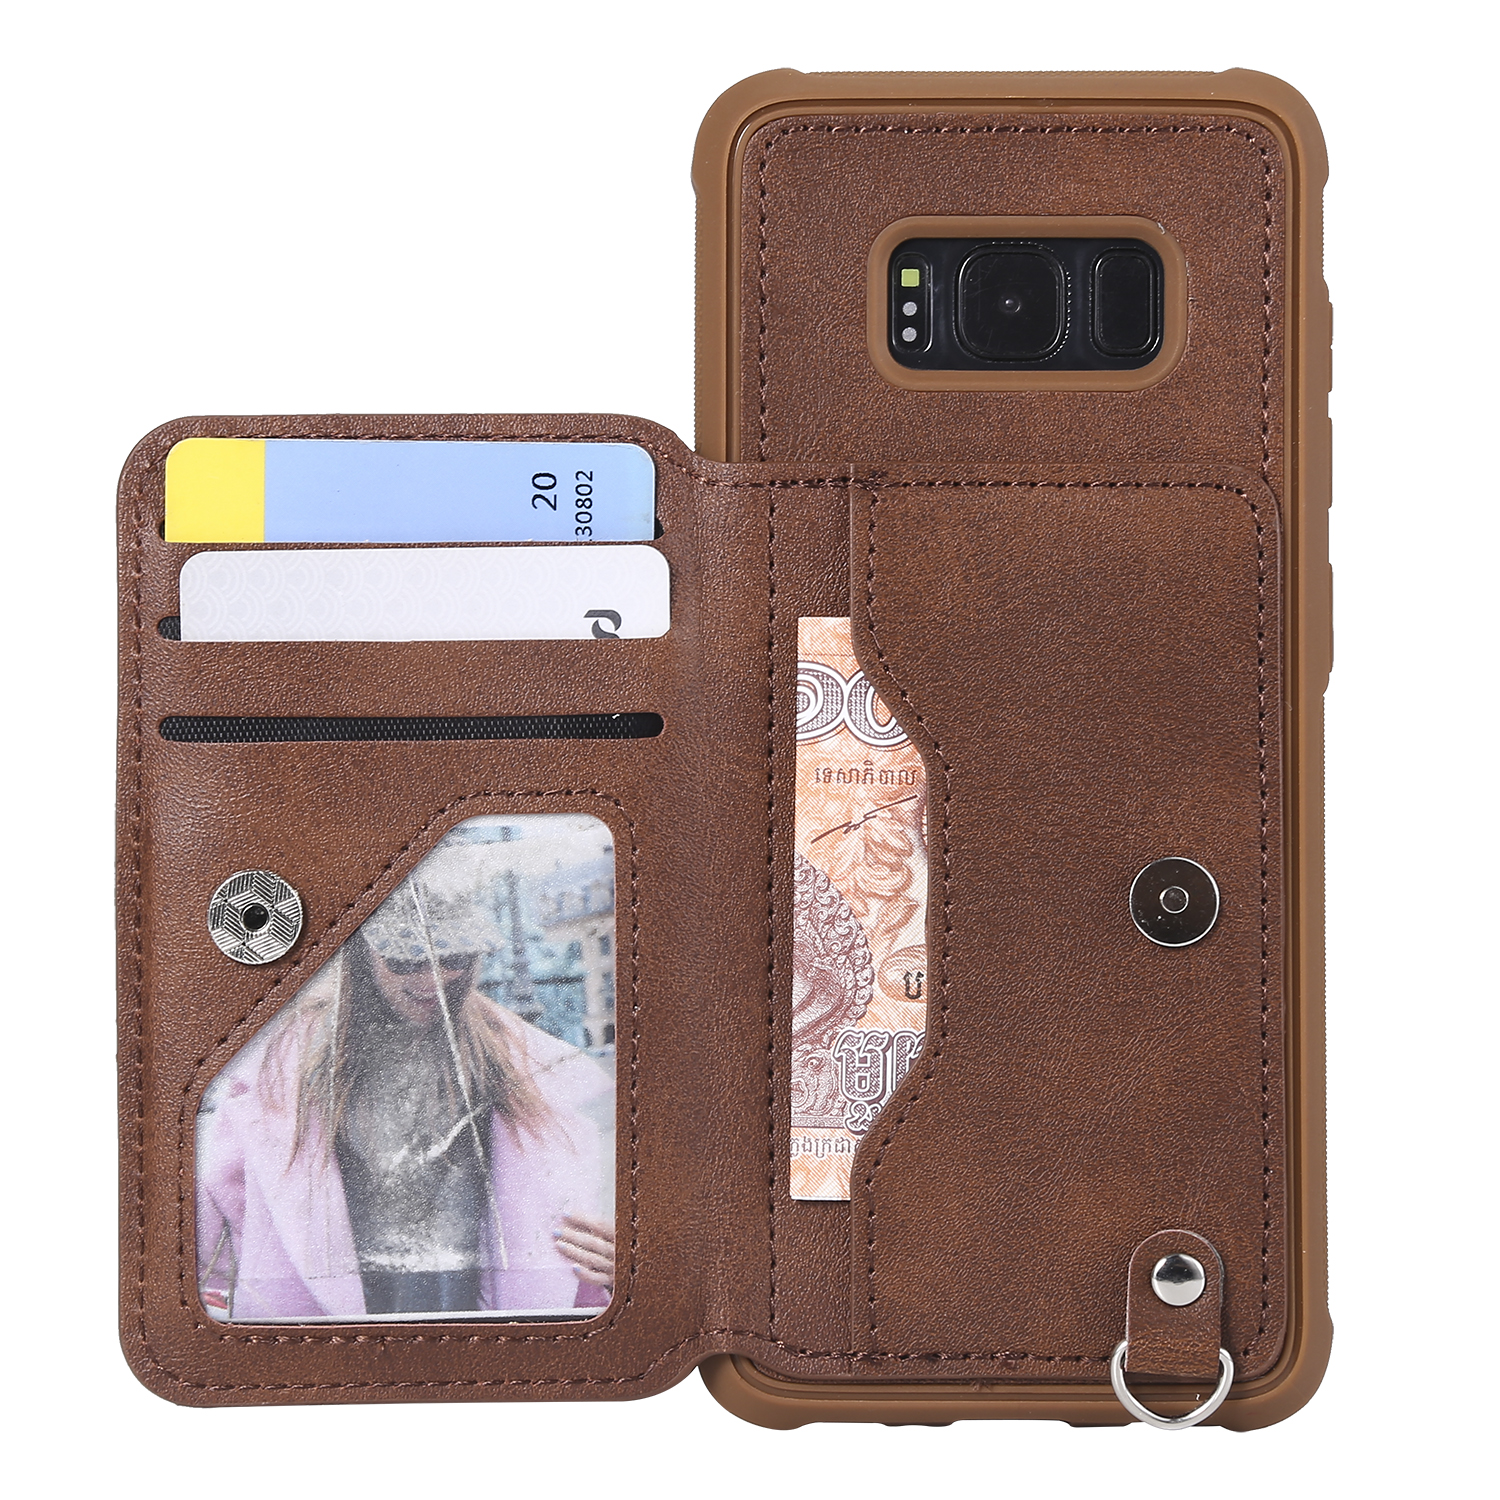 Embossed Flower Flip Leather for Samsung S8 Phone Case Wallet Case with Detachable Lanyard for Samsung S7 S9 Note 8 Coque Fundas